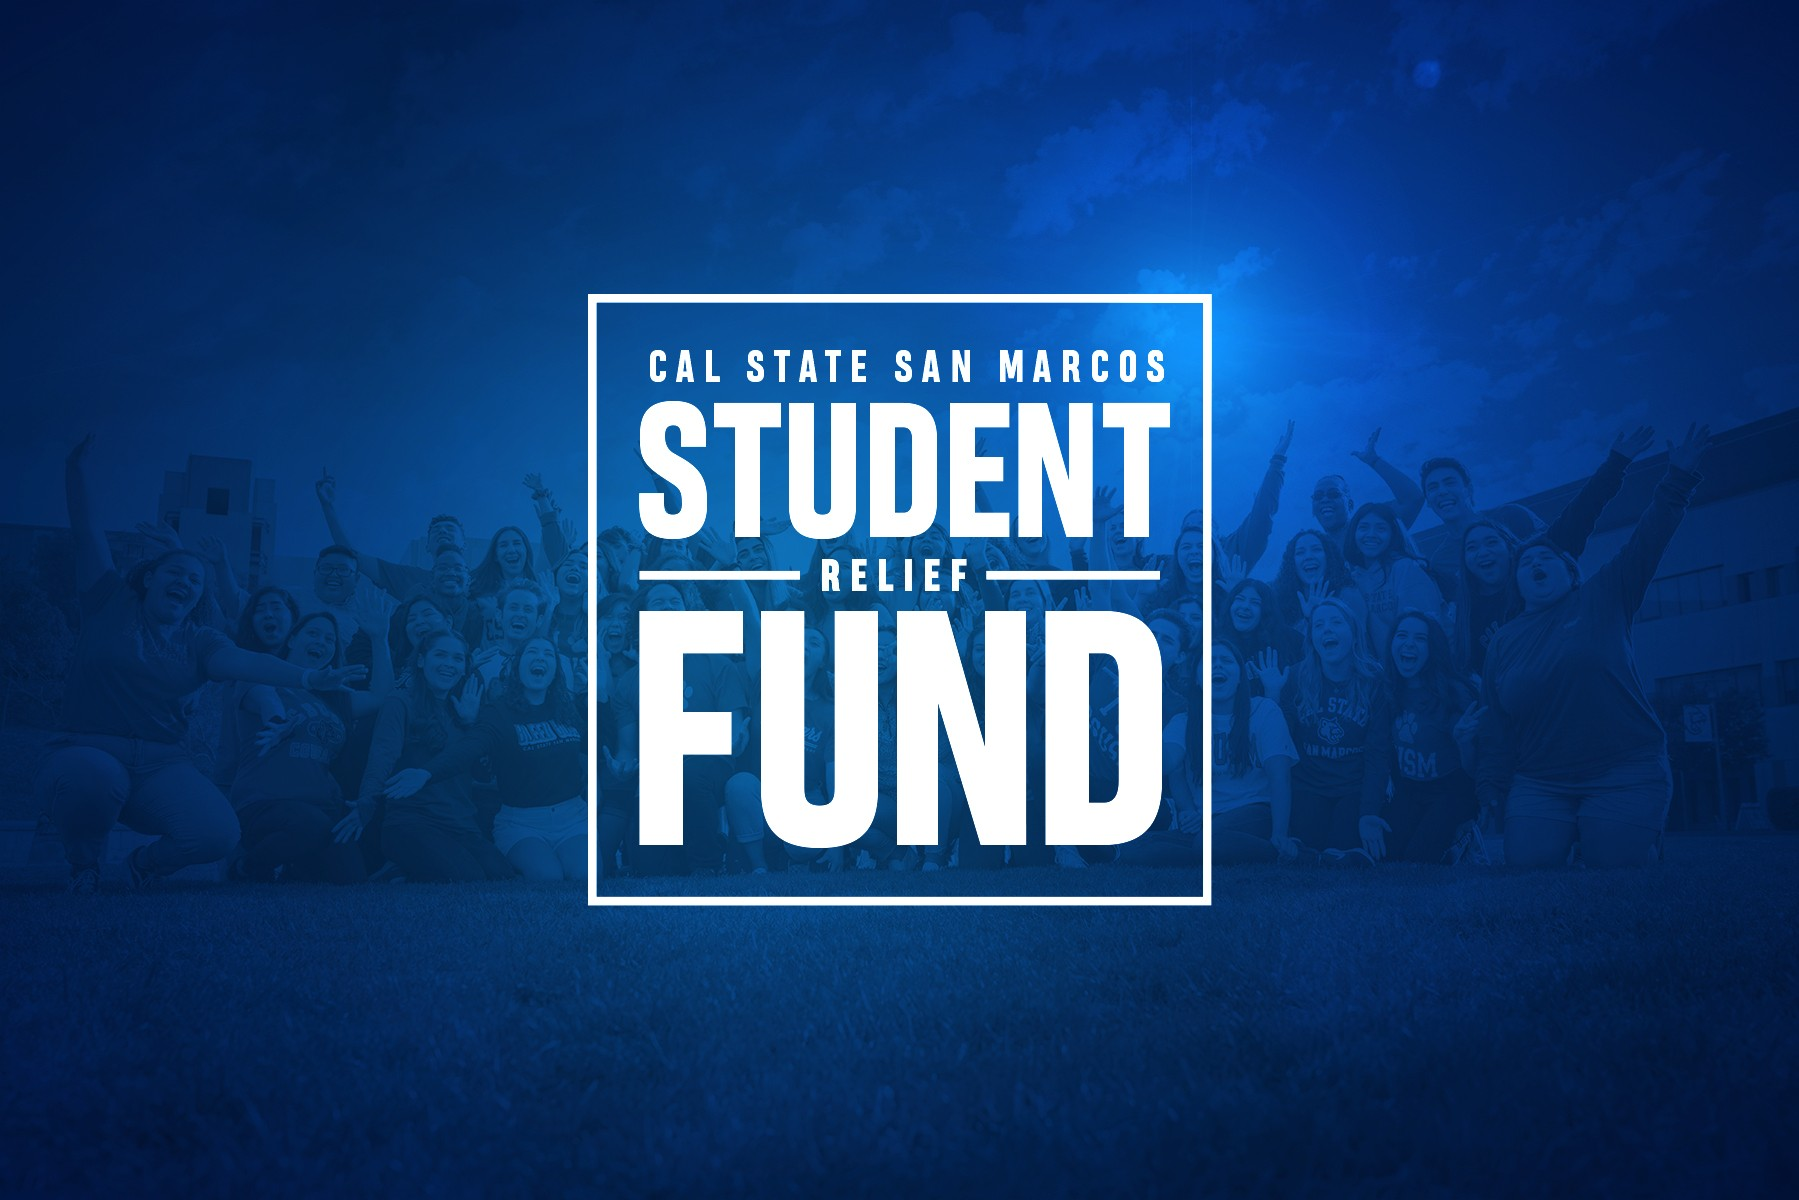 CSUSM established the Student Relief Fund to provide financial assistance during the COVID-19 crisis.